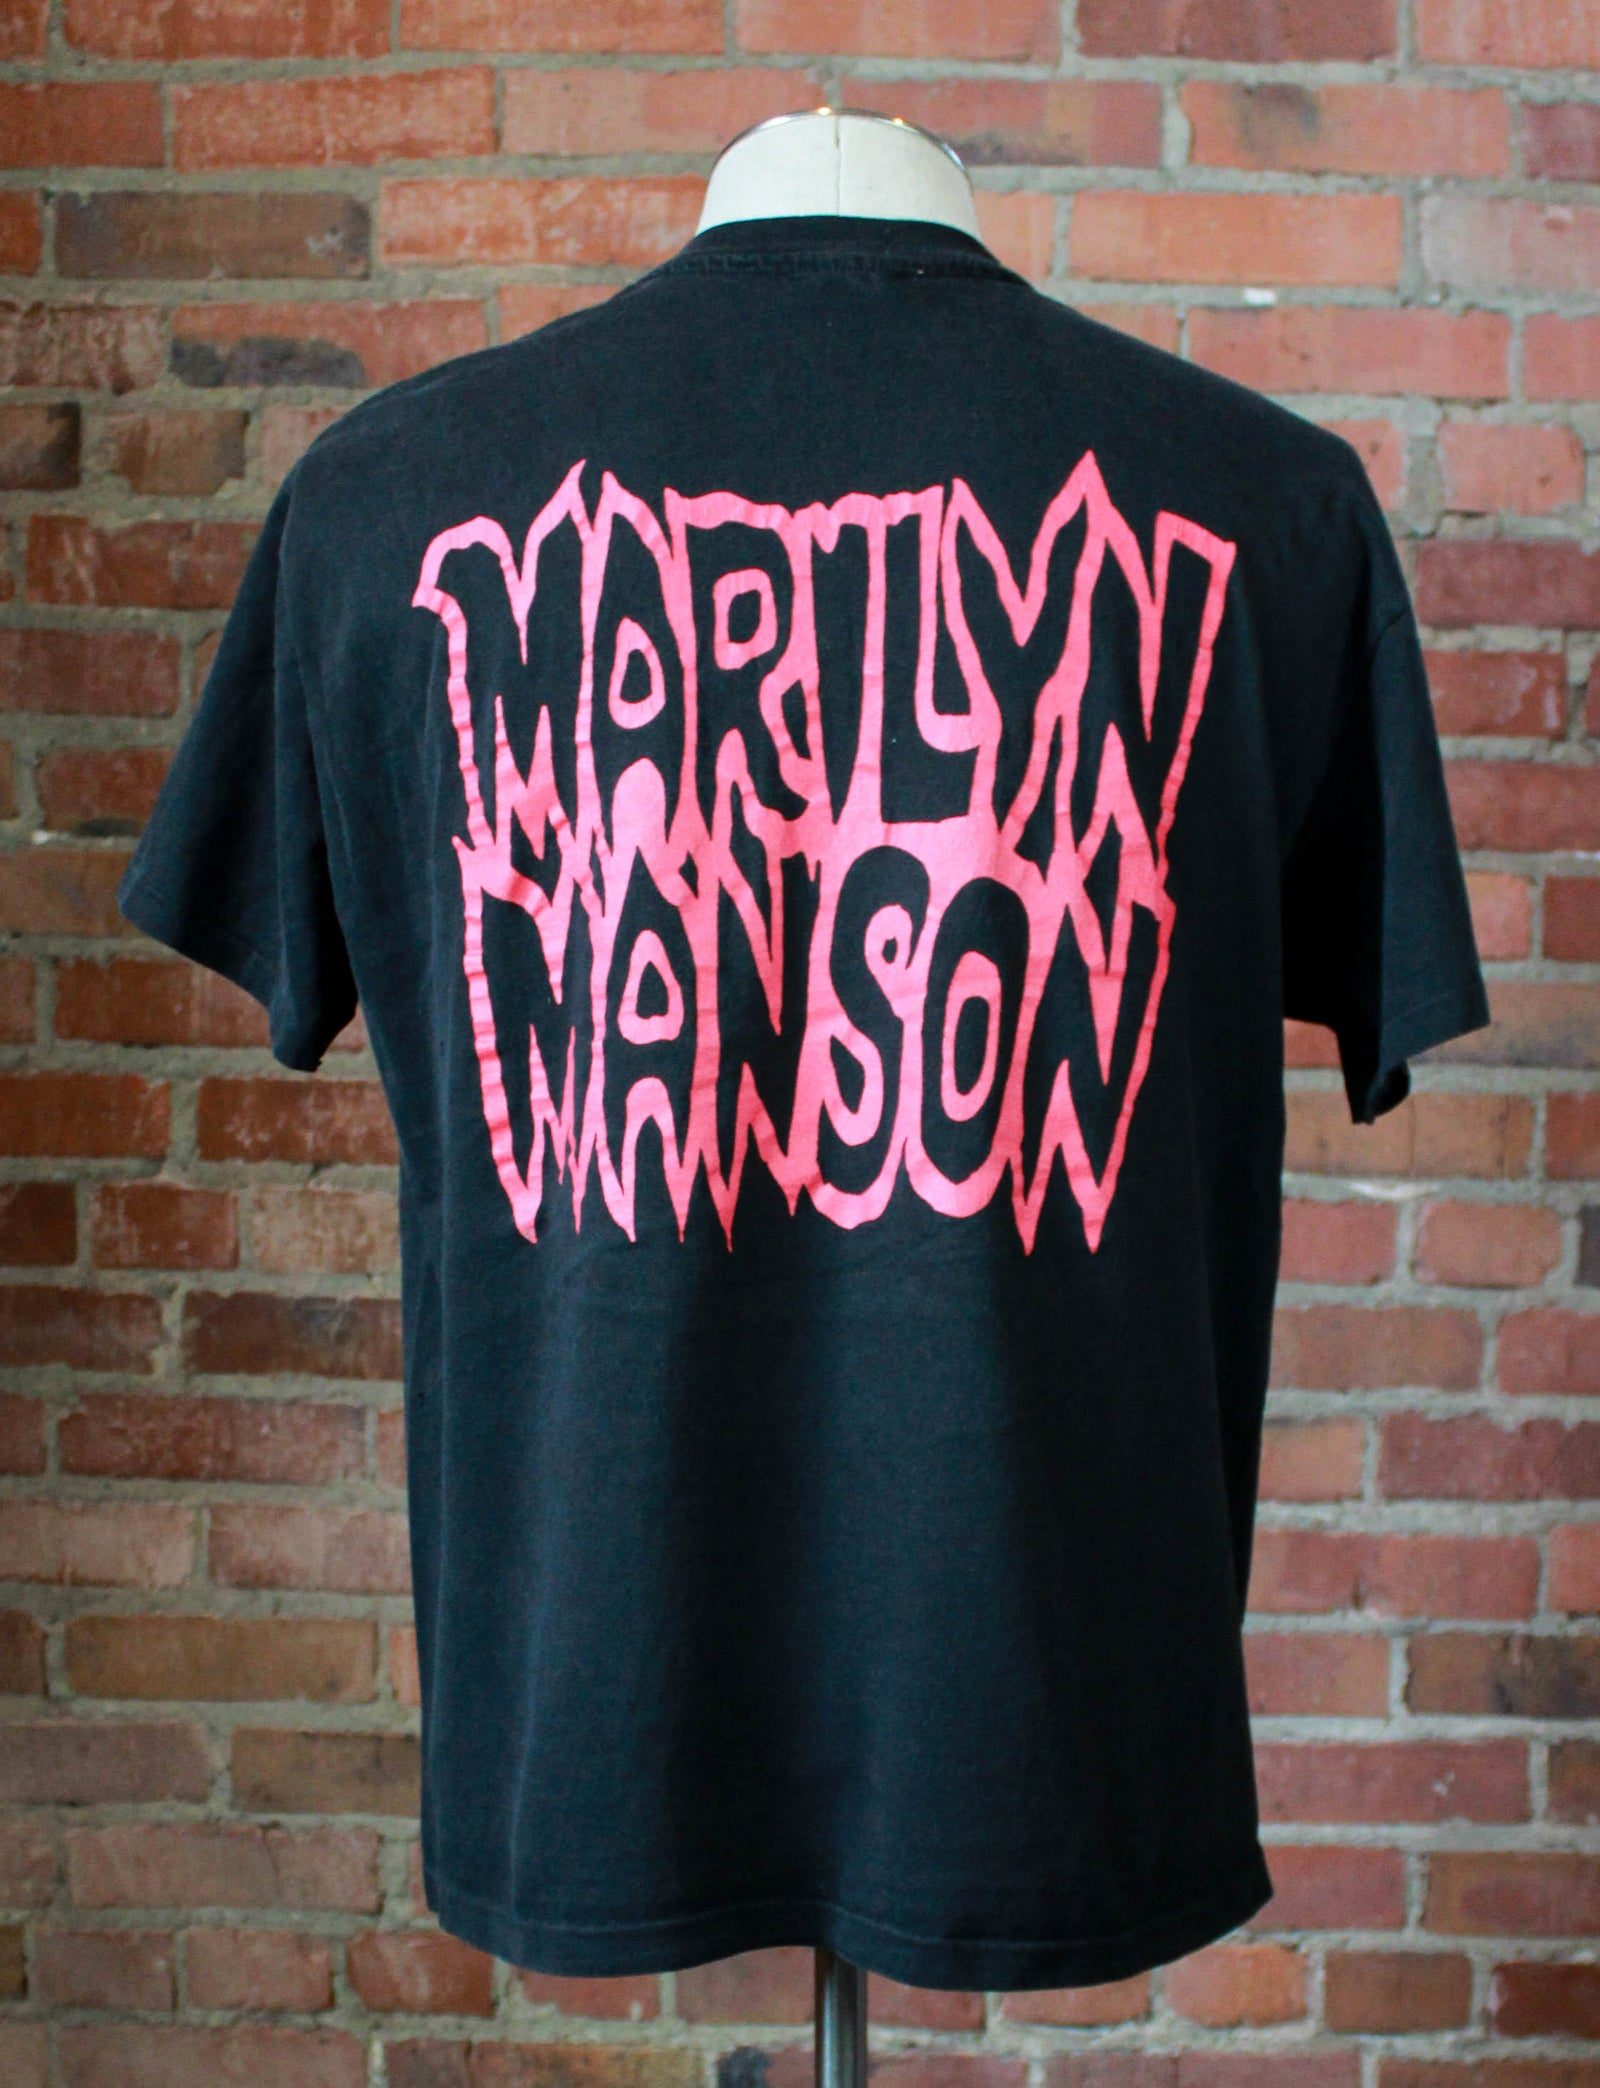 Vintage 1994 Marilyn Manson Concert T Shirt Kill God Kill Mom & Dad Black Red Unisex Large/XL